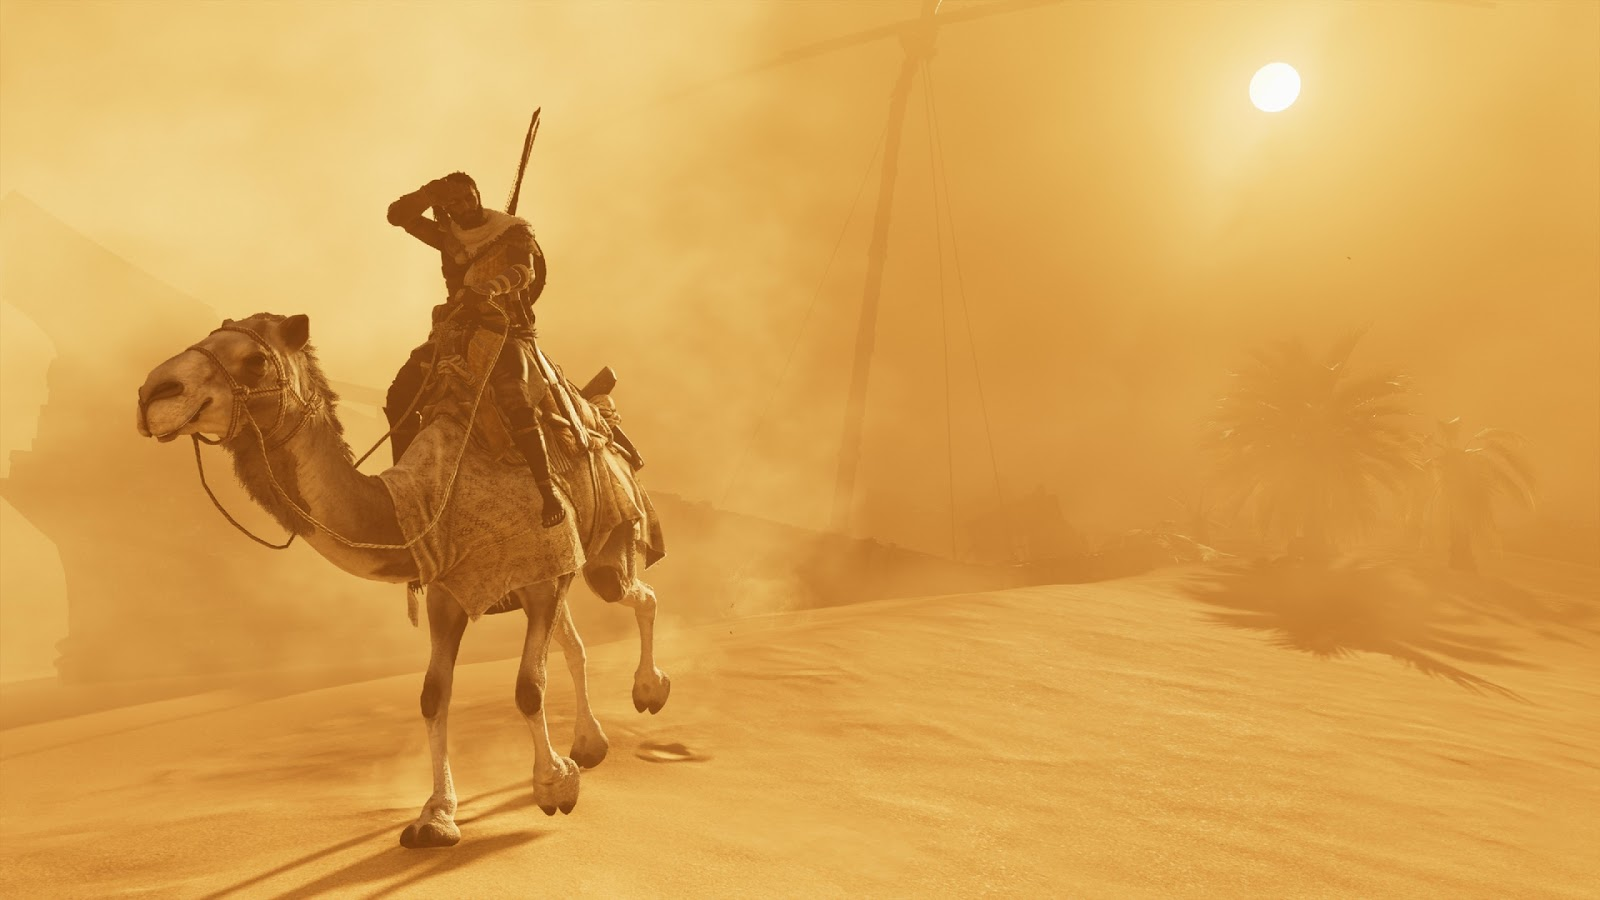 Amazing   Wallpaper Horse Assassin'S Creed - PS_Messages_20171228_110800  Best Photo Reference_74957.jpg